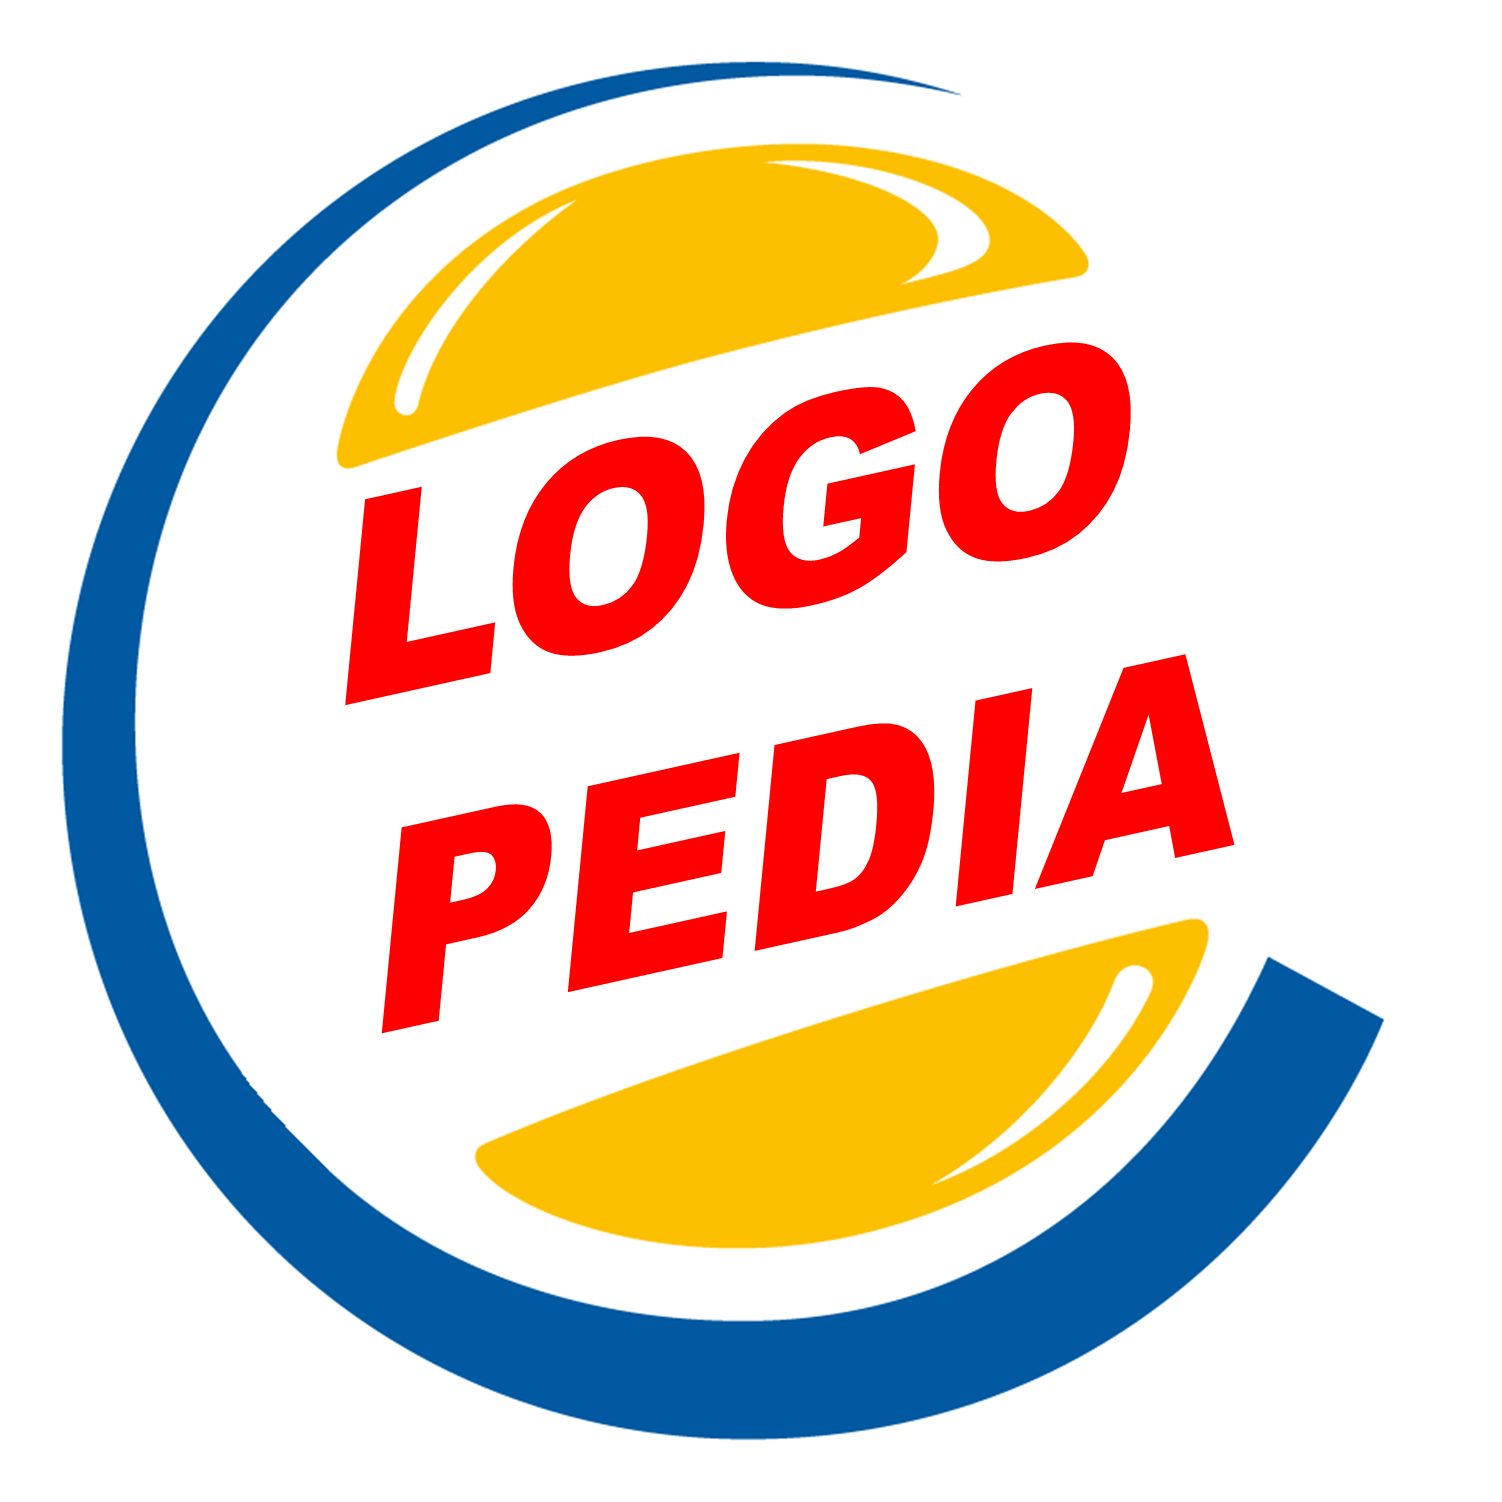 Image - Burger King Logopedia.png - Logopedia, the logo and ...